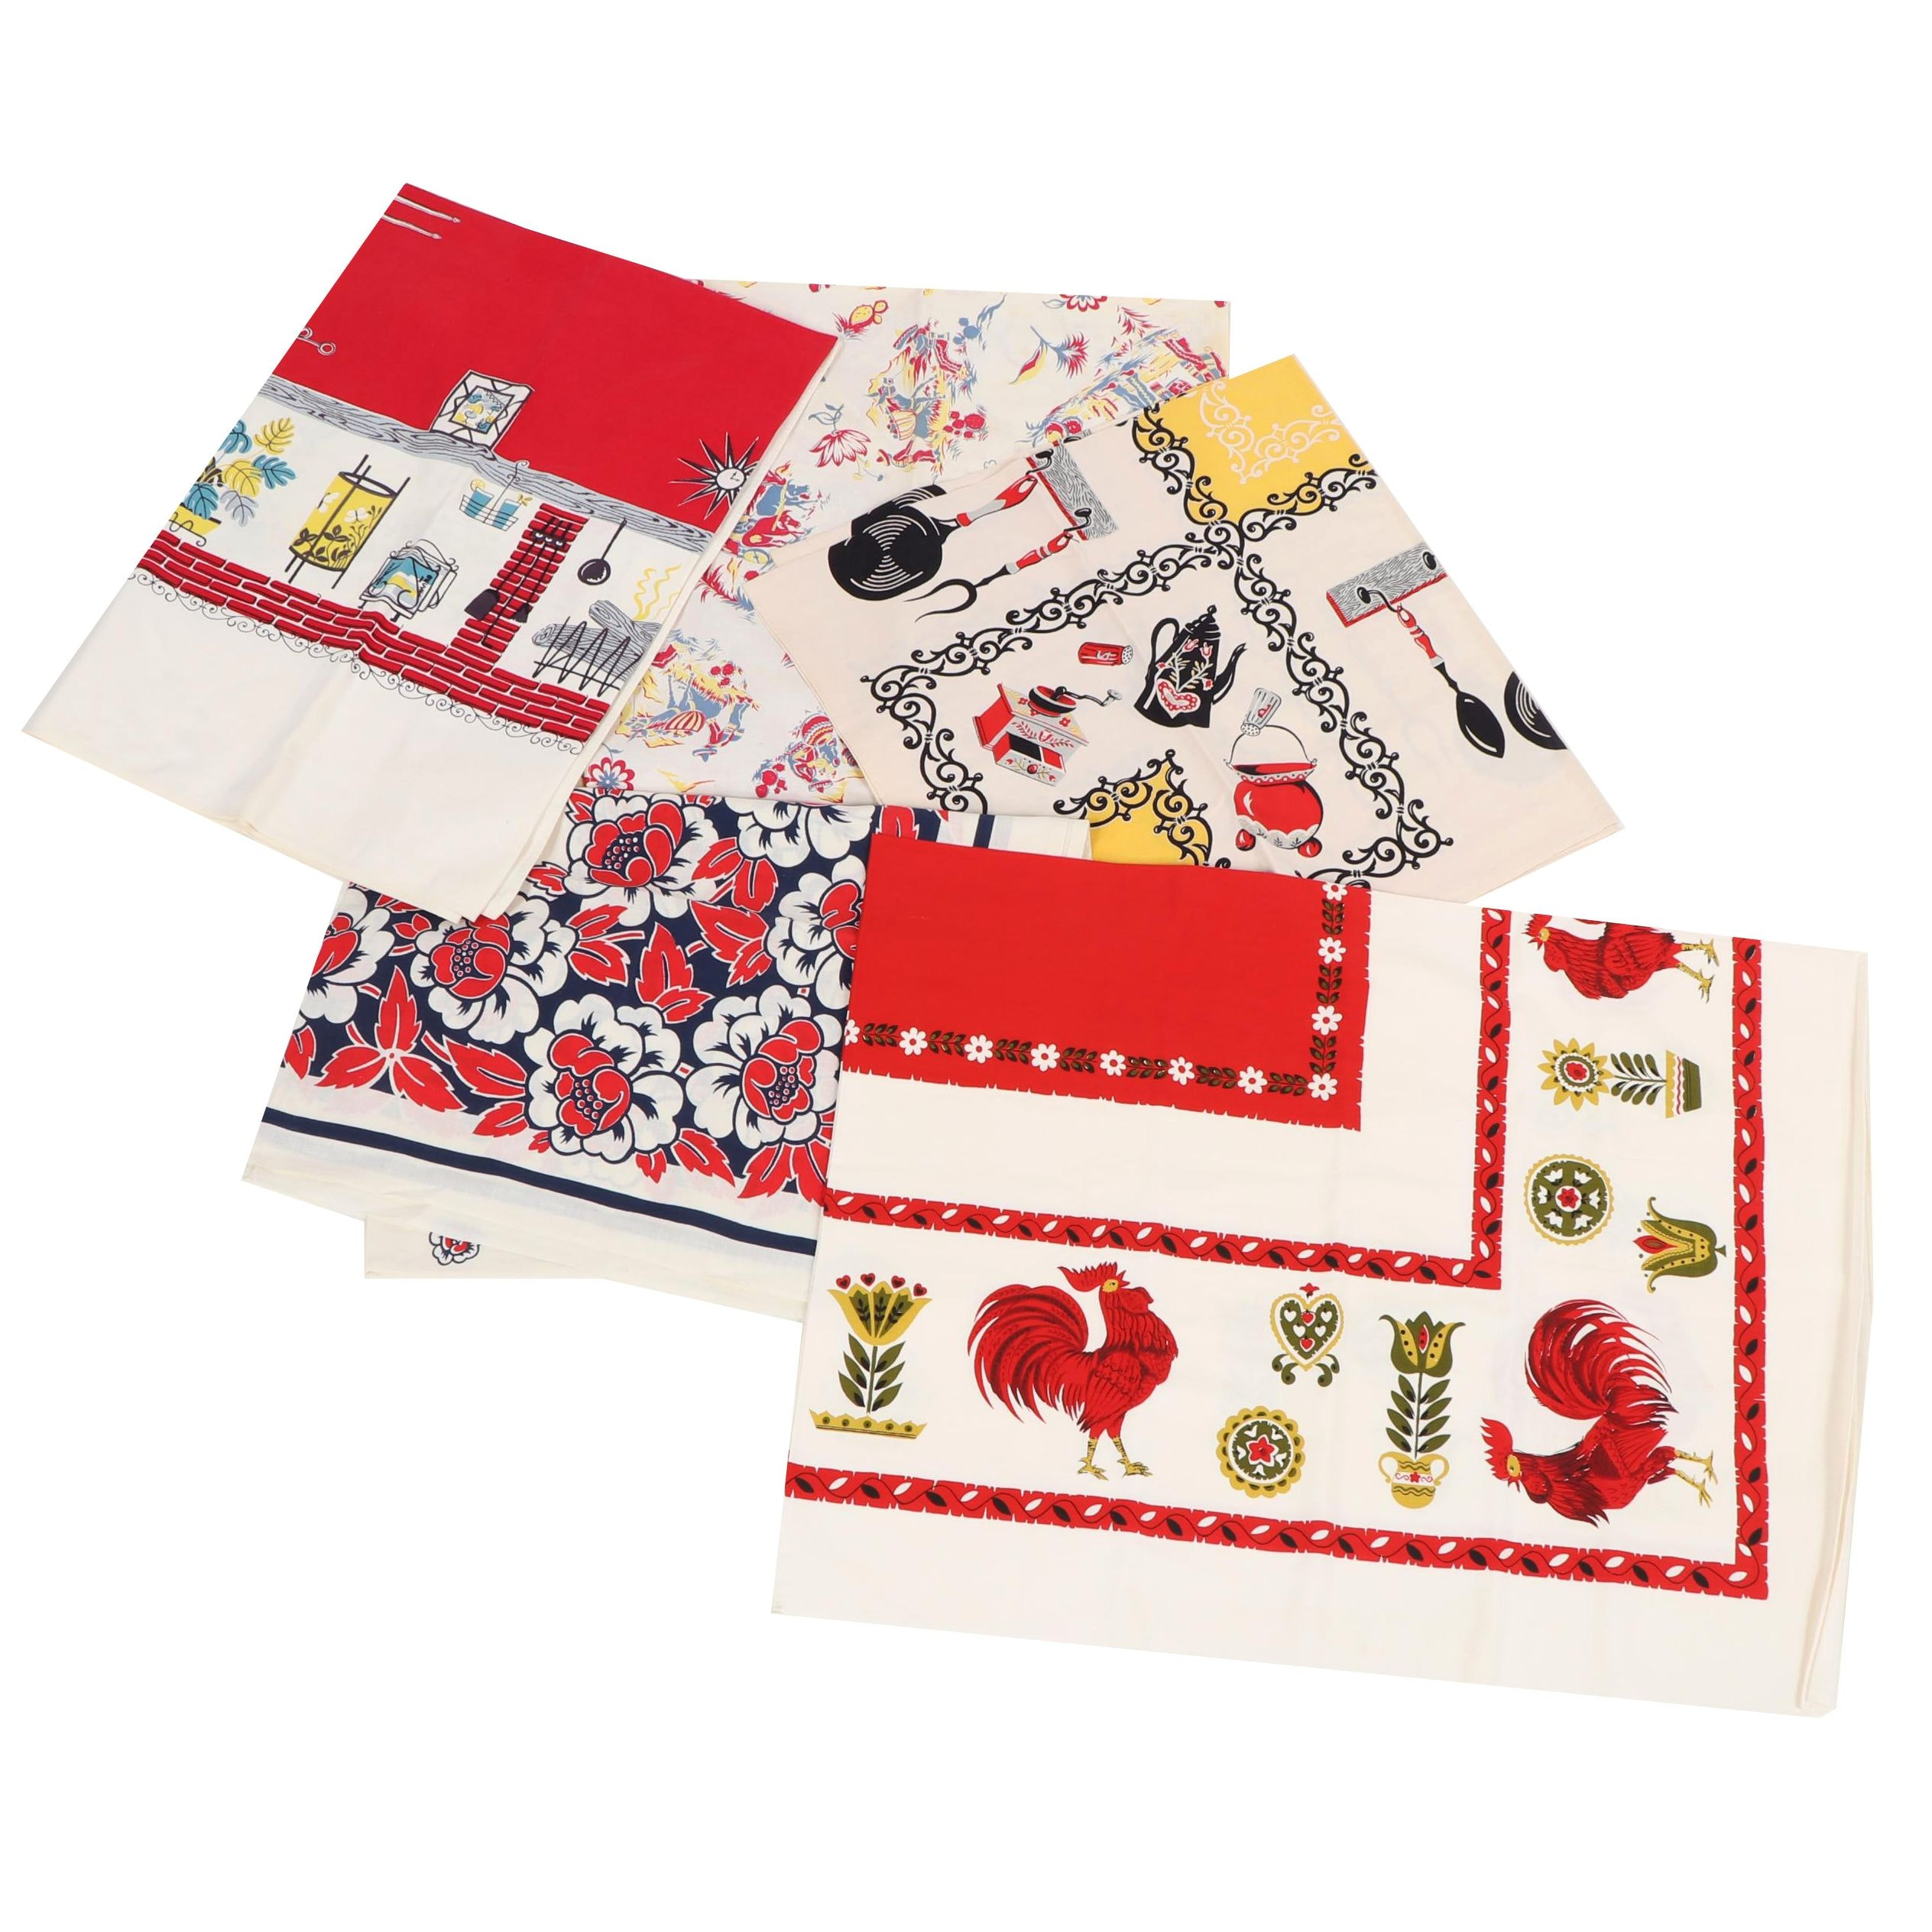 Printed Floral, Animal, and Country Kitchen Motif Table Linens, Mid-20th Century